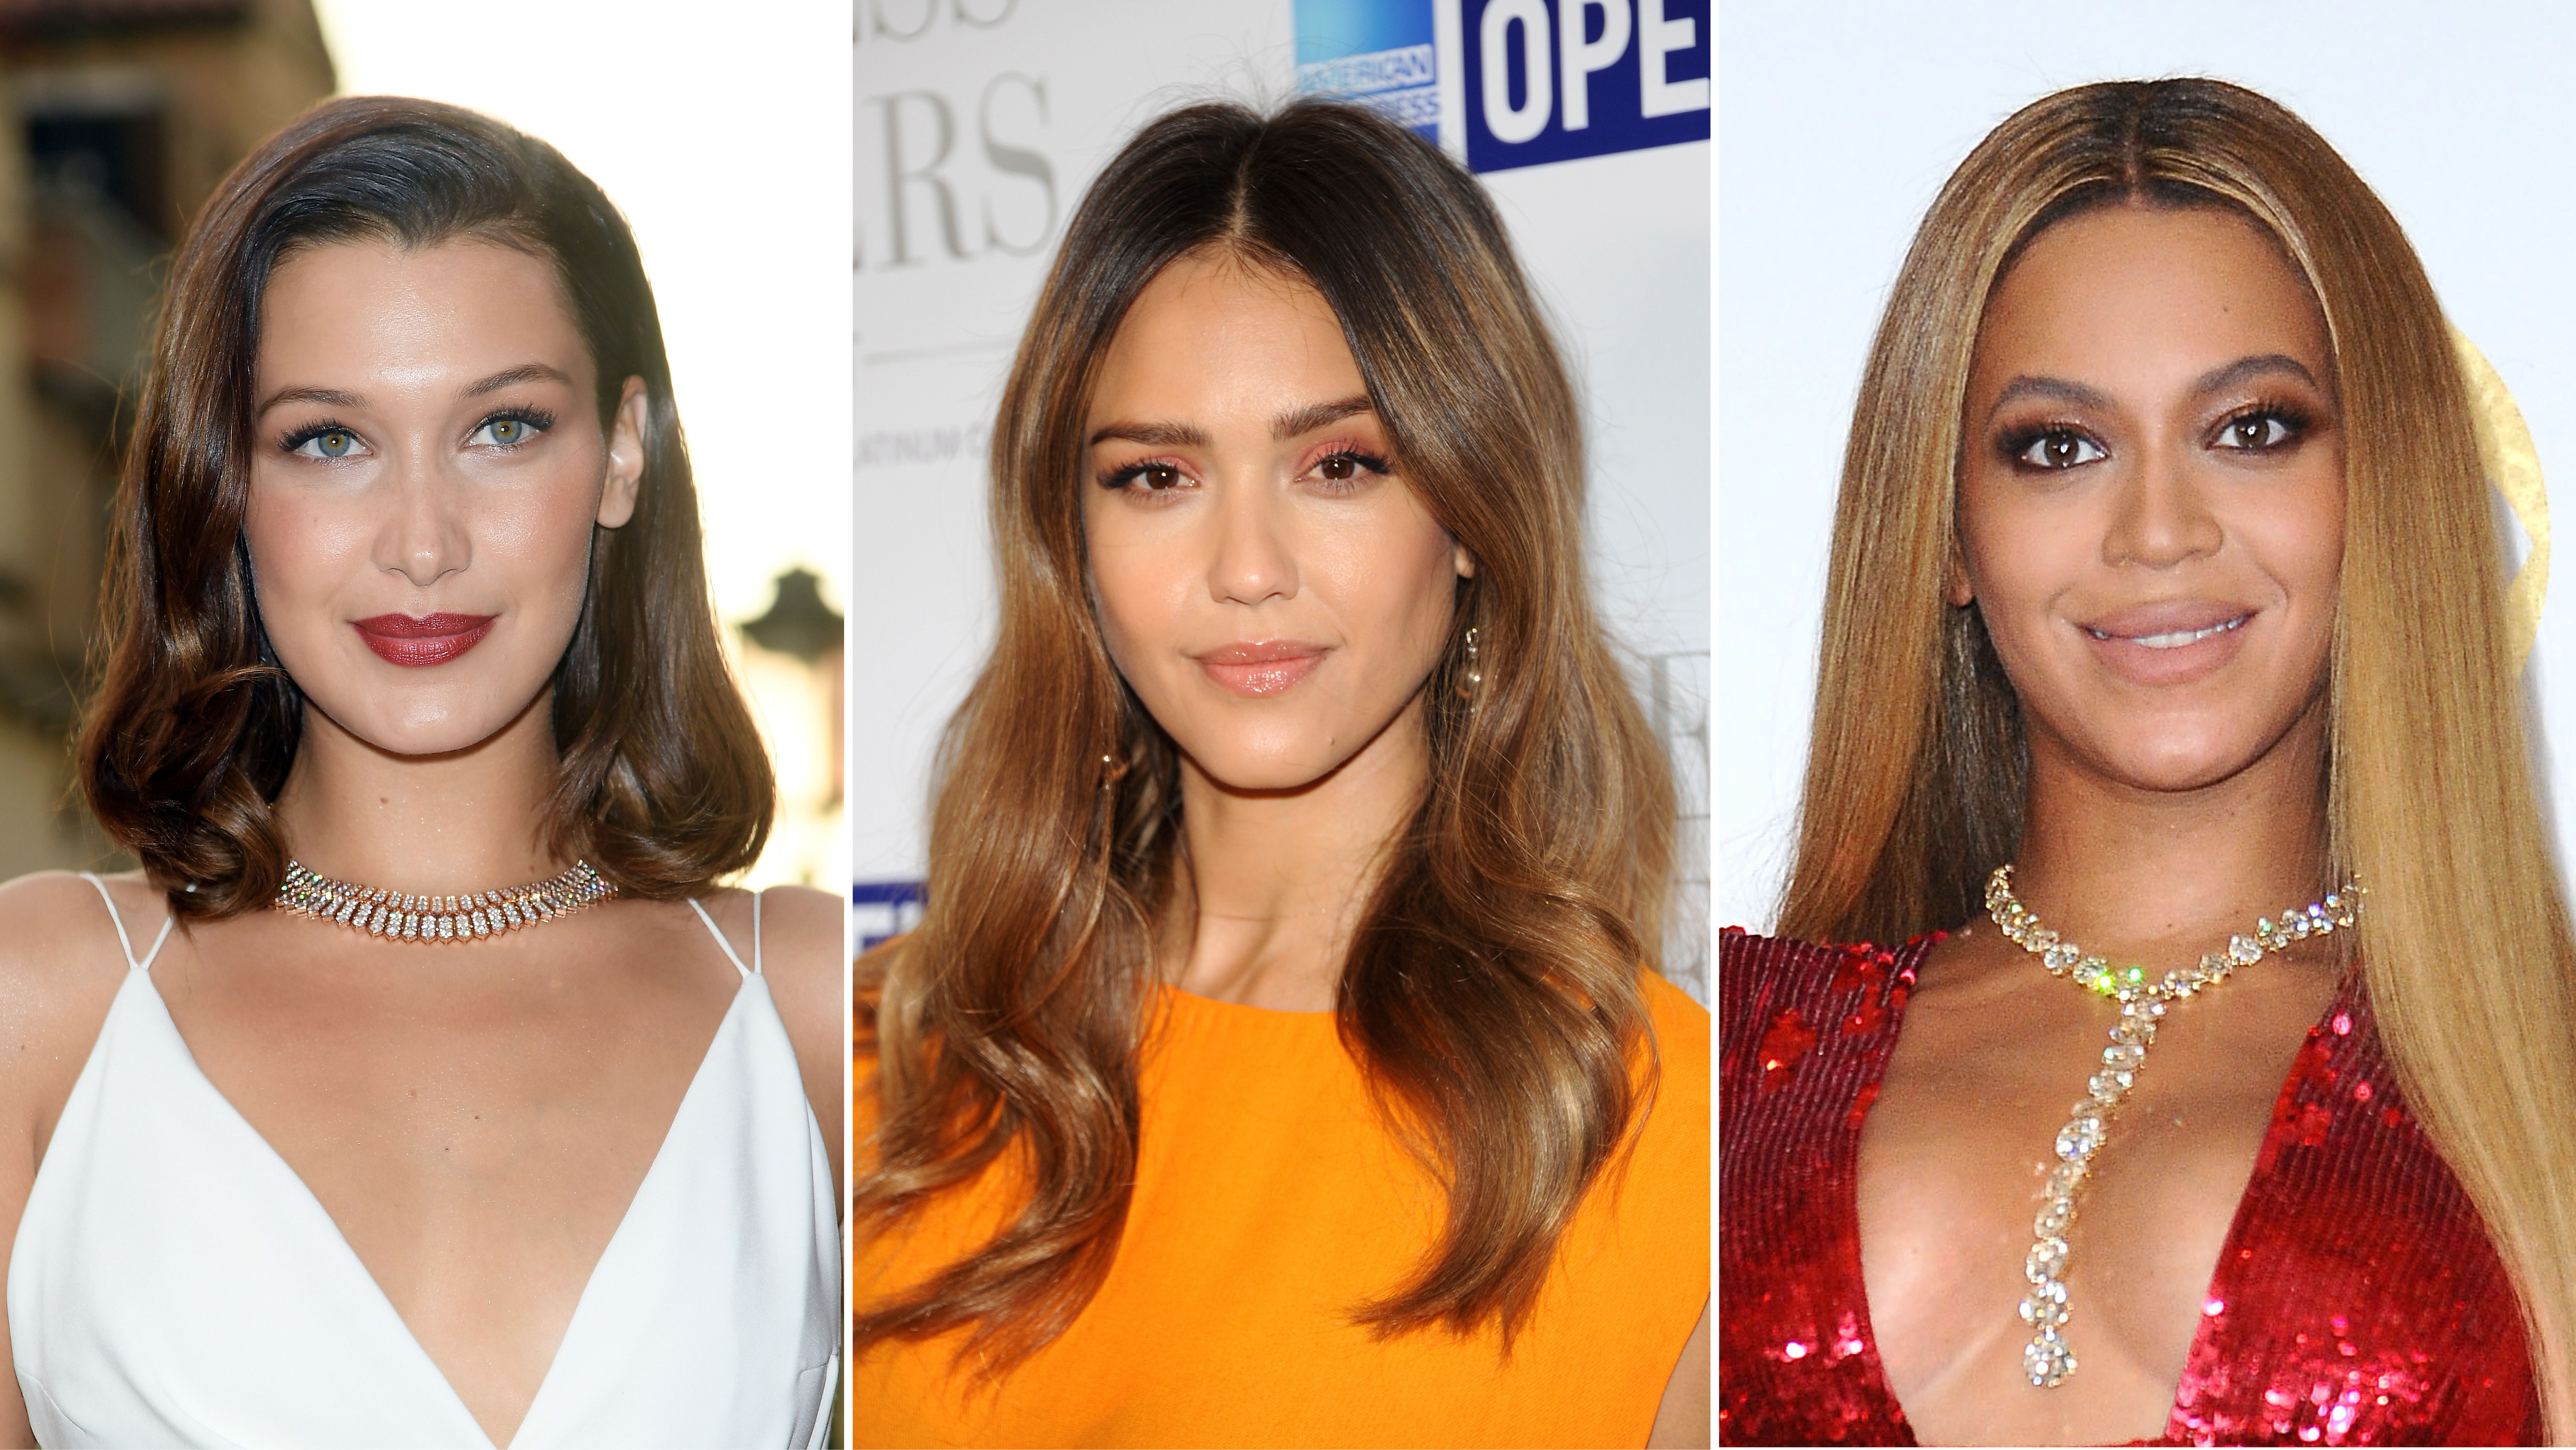 Best ideas about Hairstyles For Oval Faces Female . Save or Pin The 10 Most Flattering Haircuts for Oval Faces Now.